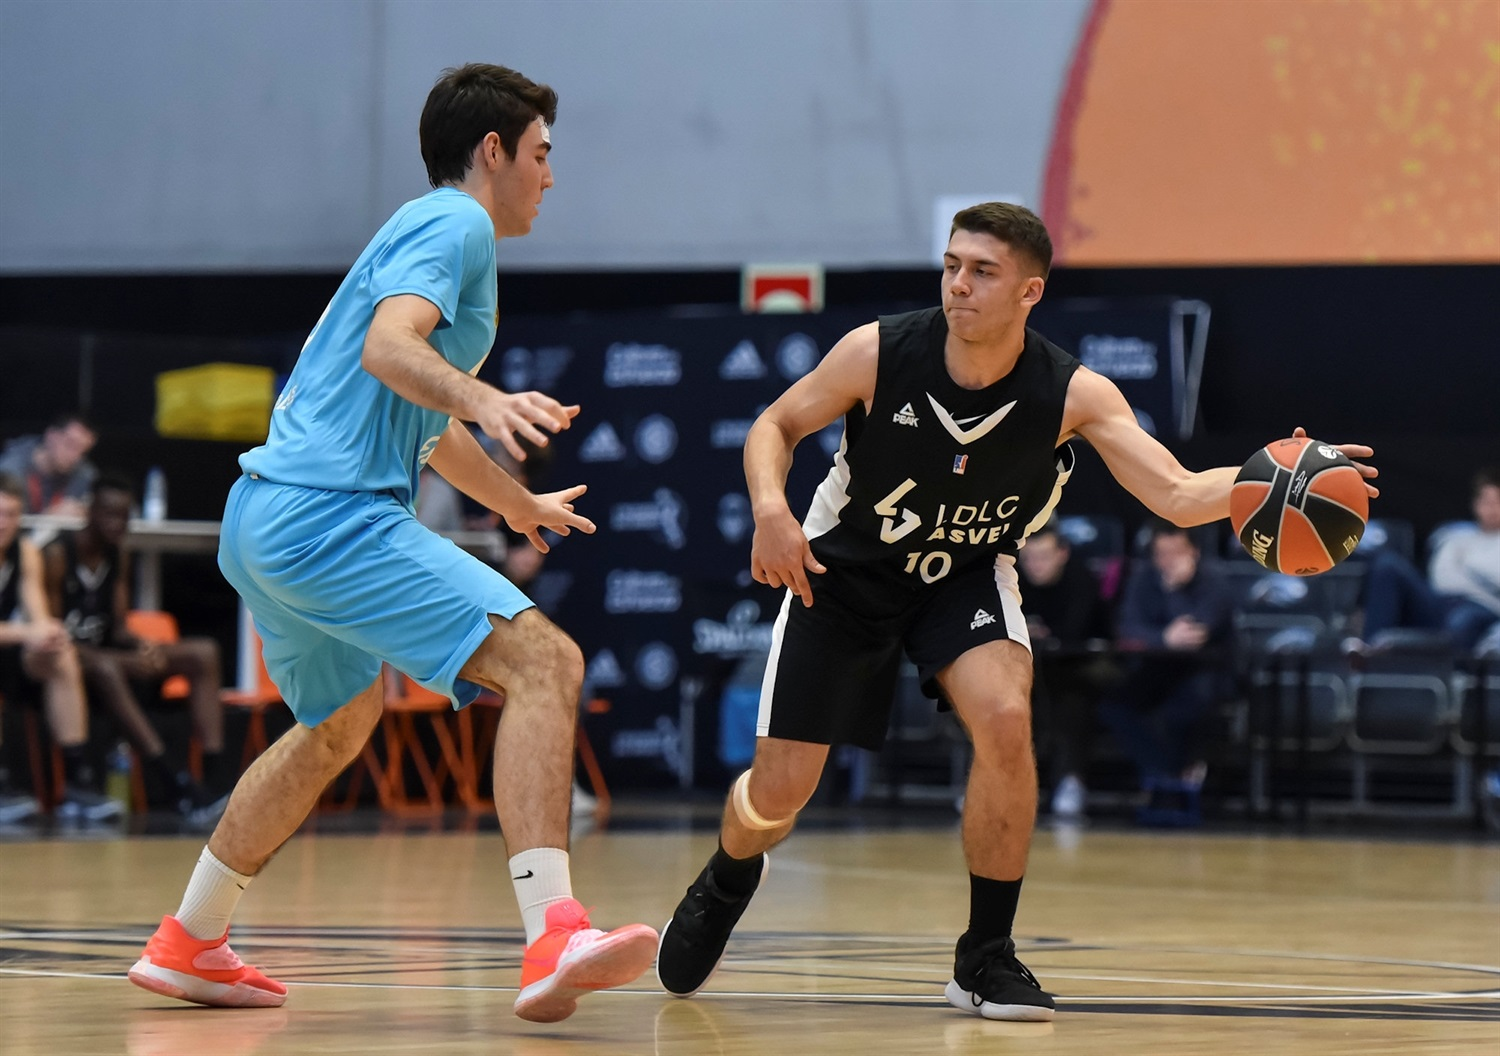 Amir Bouzidi - U18 LDLC ASVEL Villeurbanne (photo Miguel Angel Polo - Valencia) - JT18